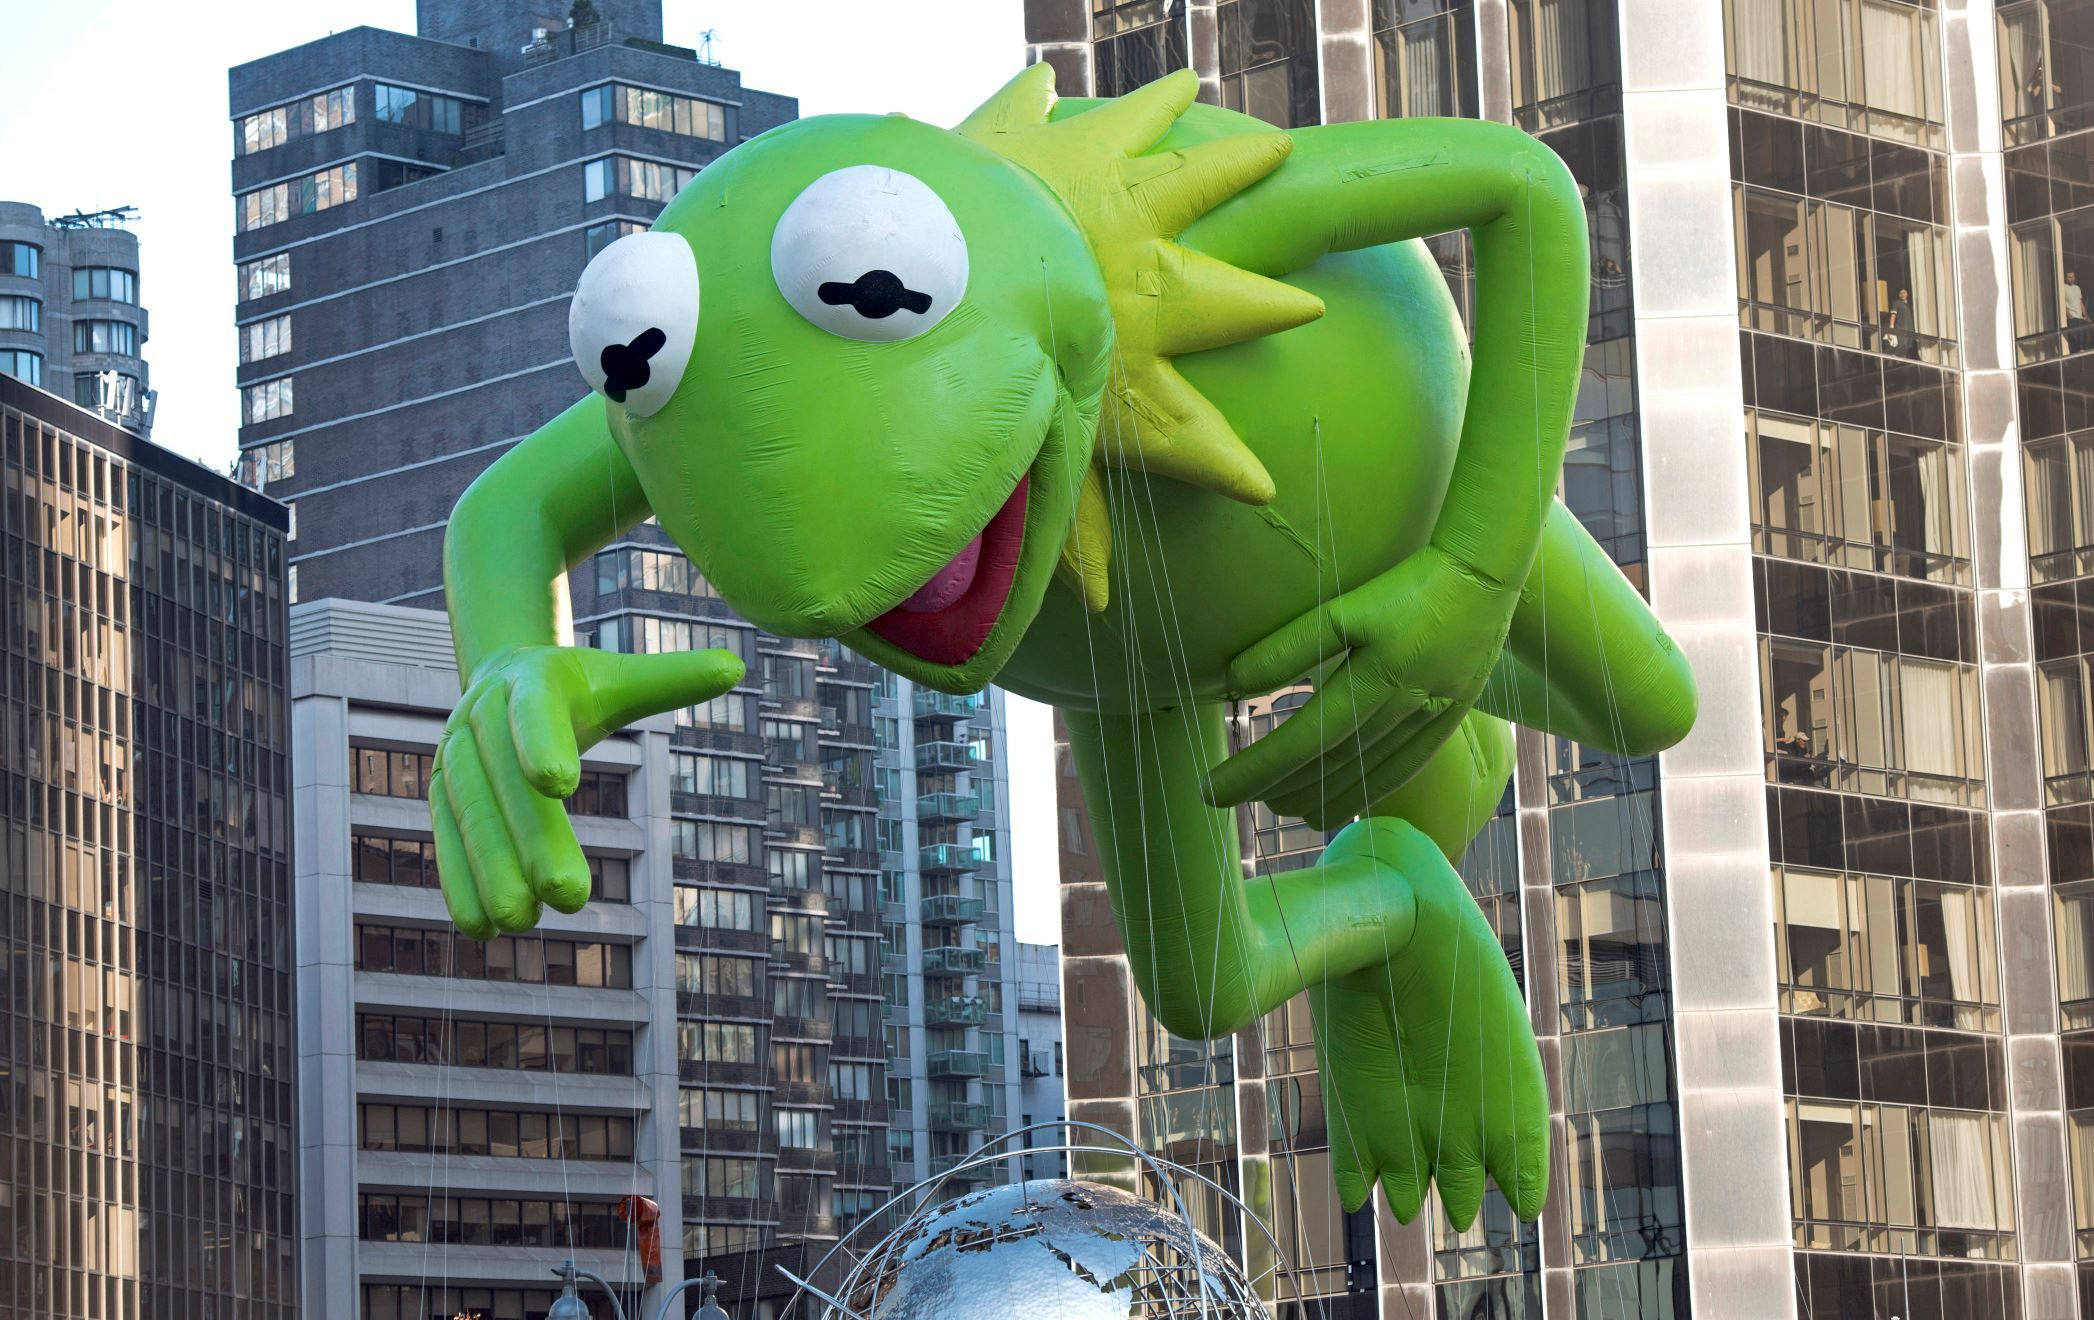 Outrageous Macy S Thanksgiving Day Parade Balloons Macy S Thanksgiving Day Parade Thanksgiving Day Parade Thanksgiving Day